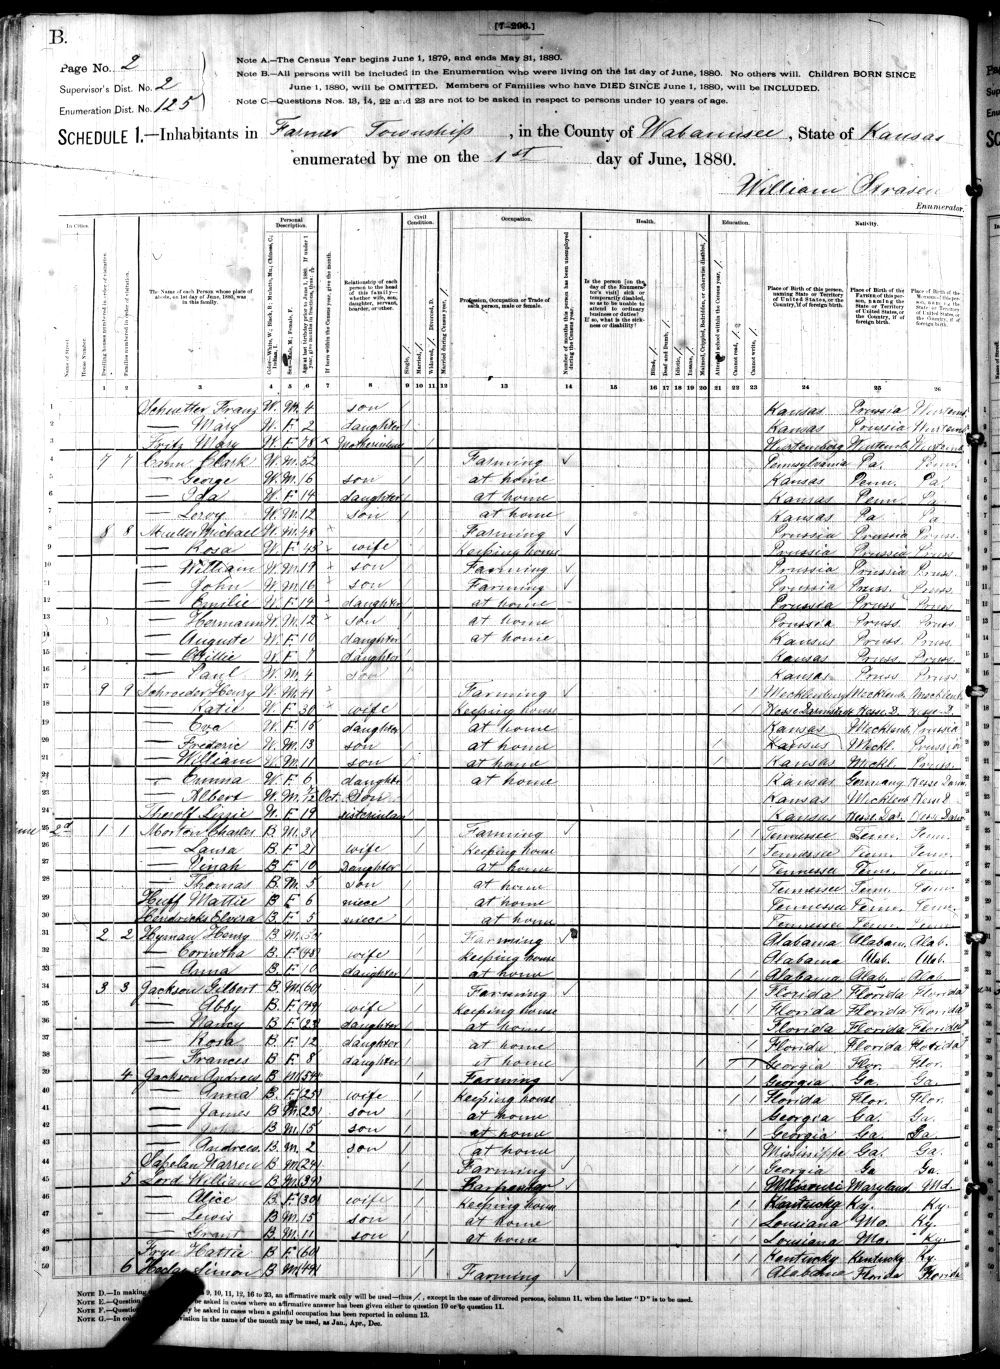 Wabaunsee County census 1880